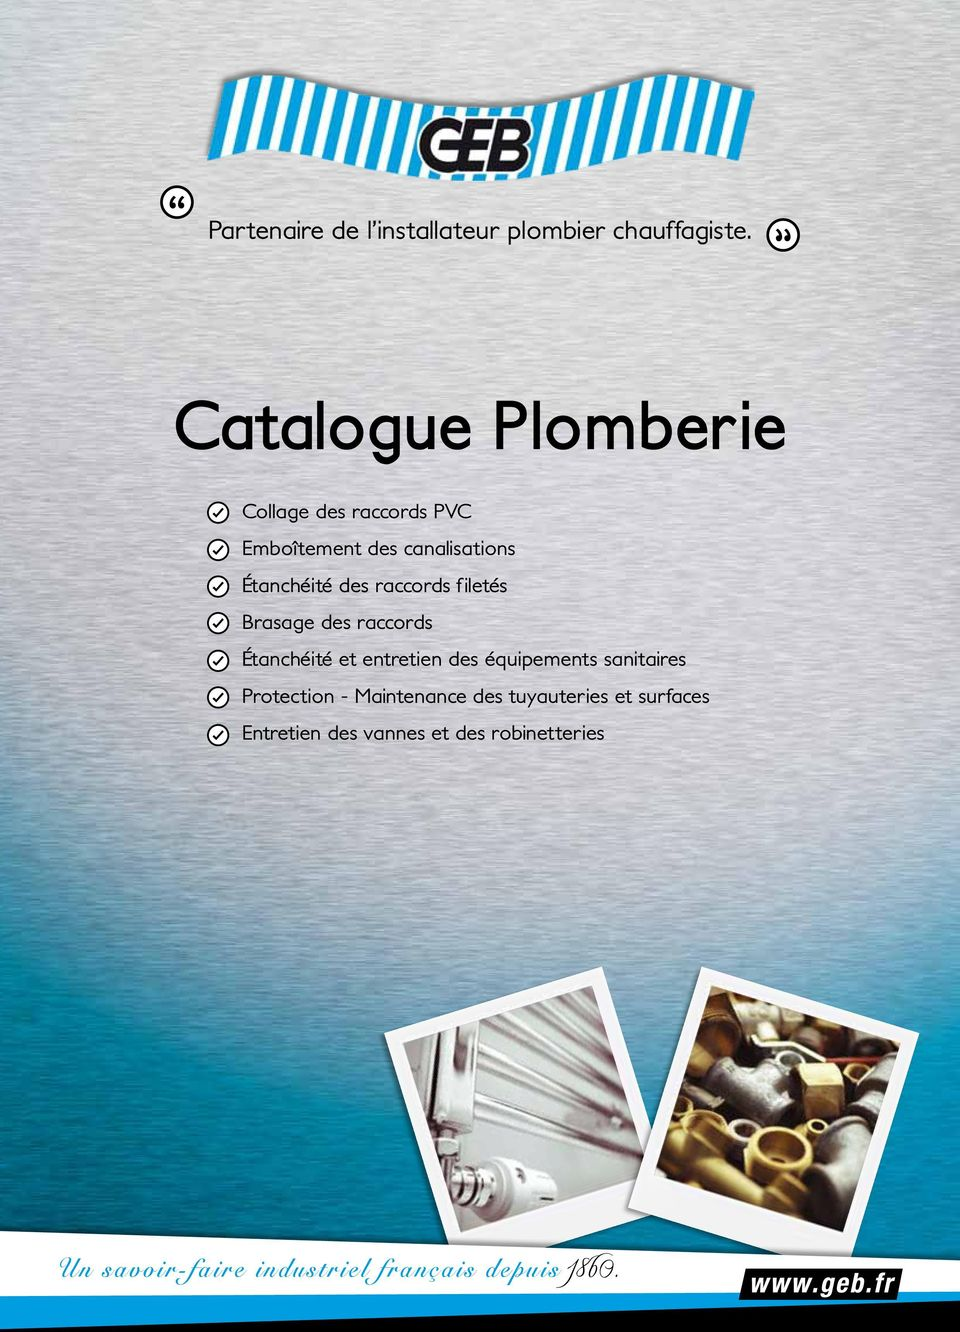 partenaire de l installateur plombier chauffagiste catalogue plomberie pdf. Black Bedroom Furniture Sets. Home Design Ideas